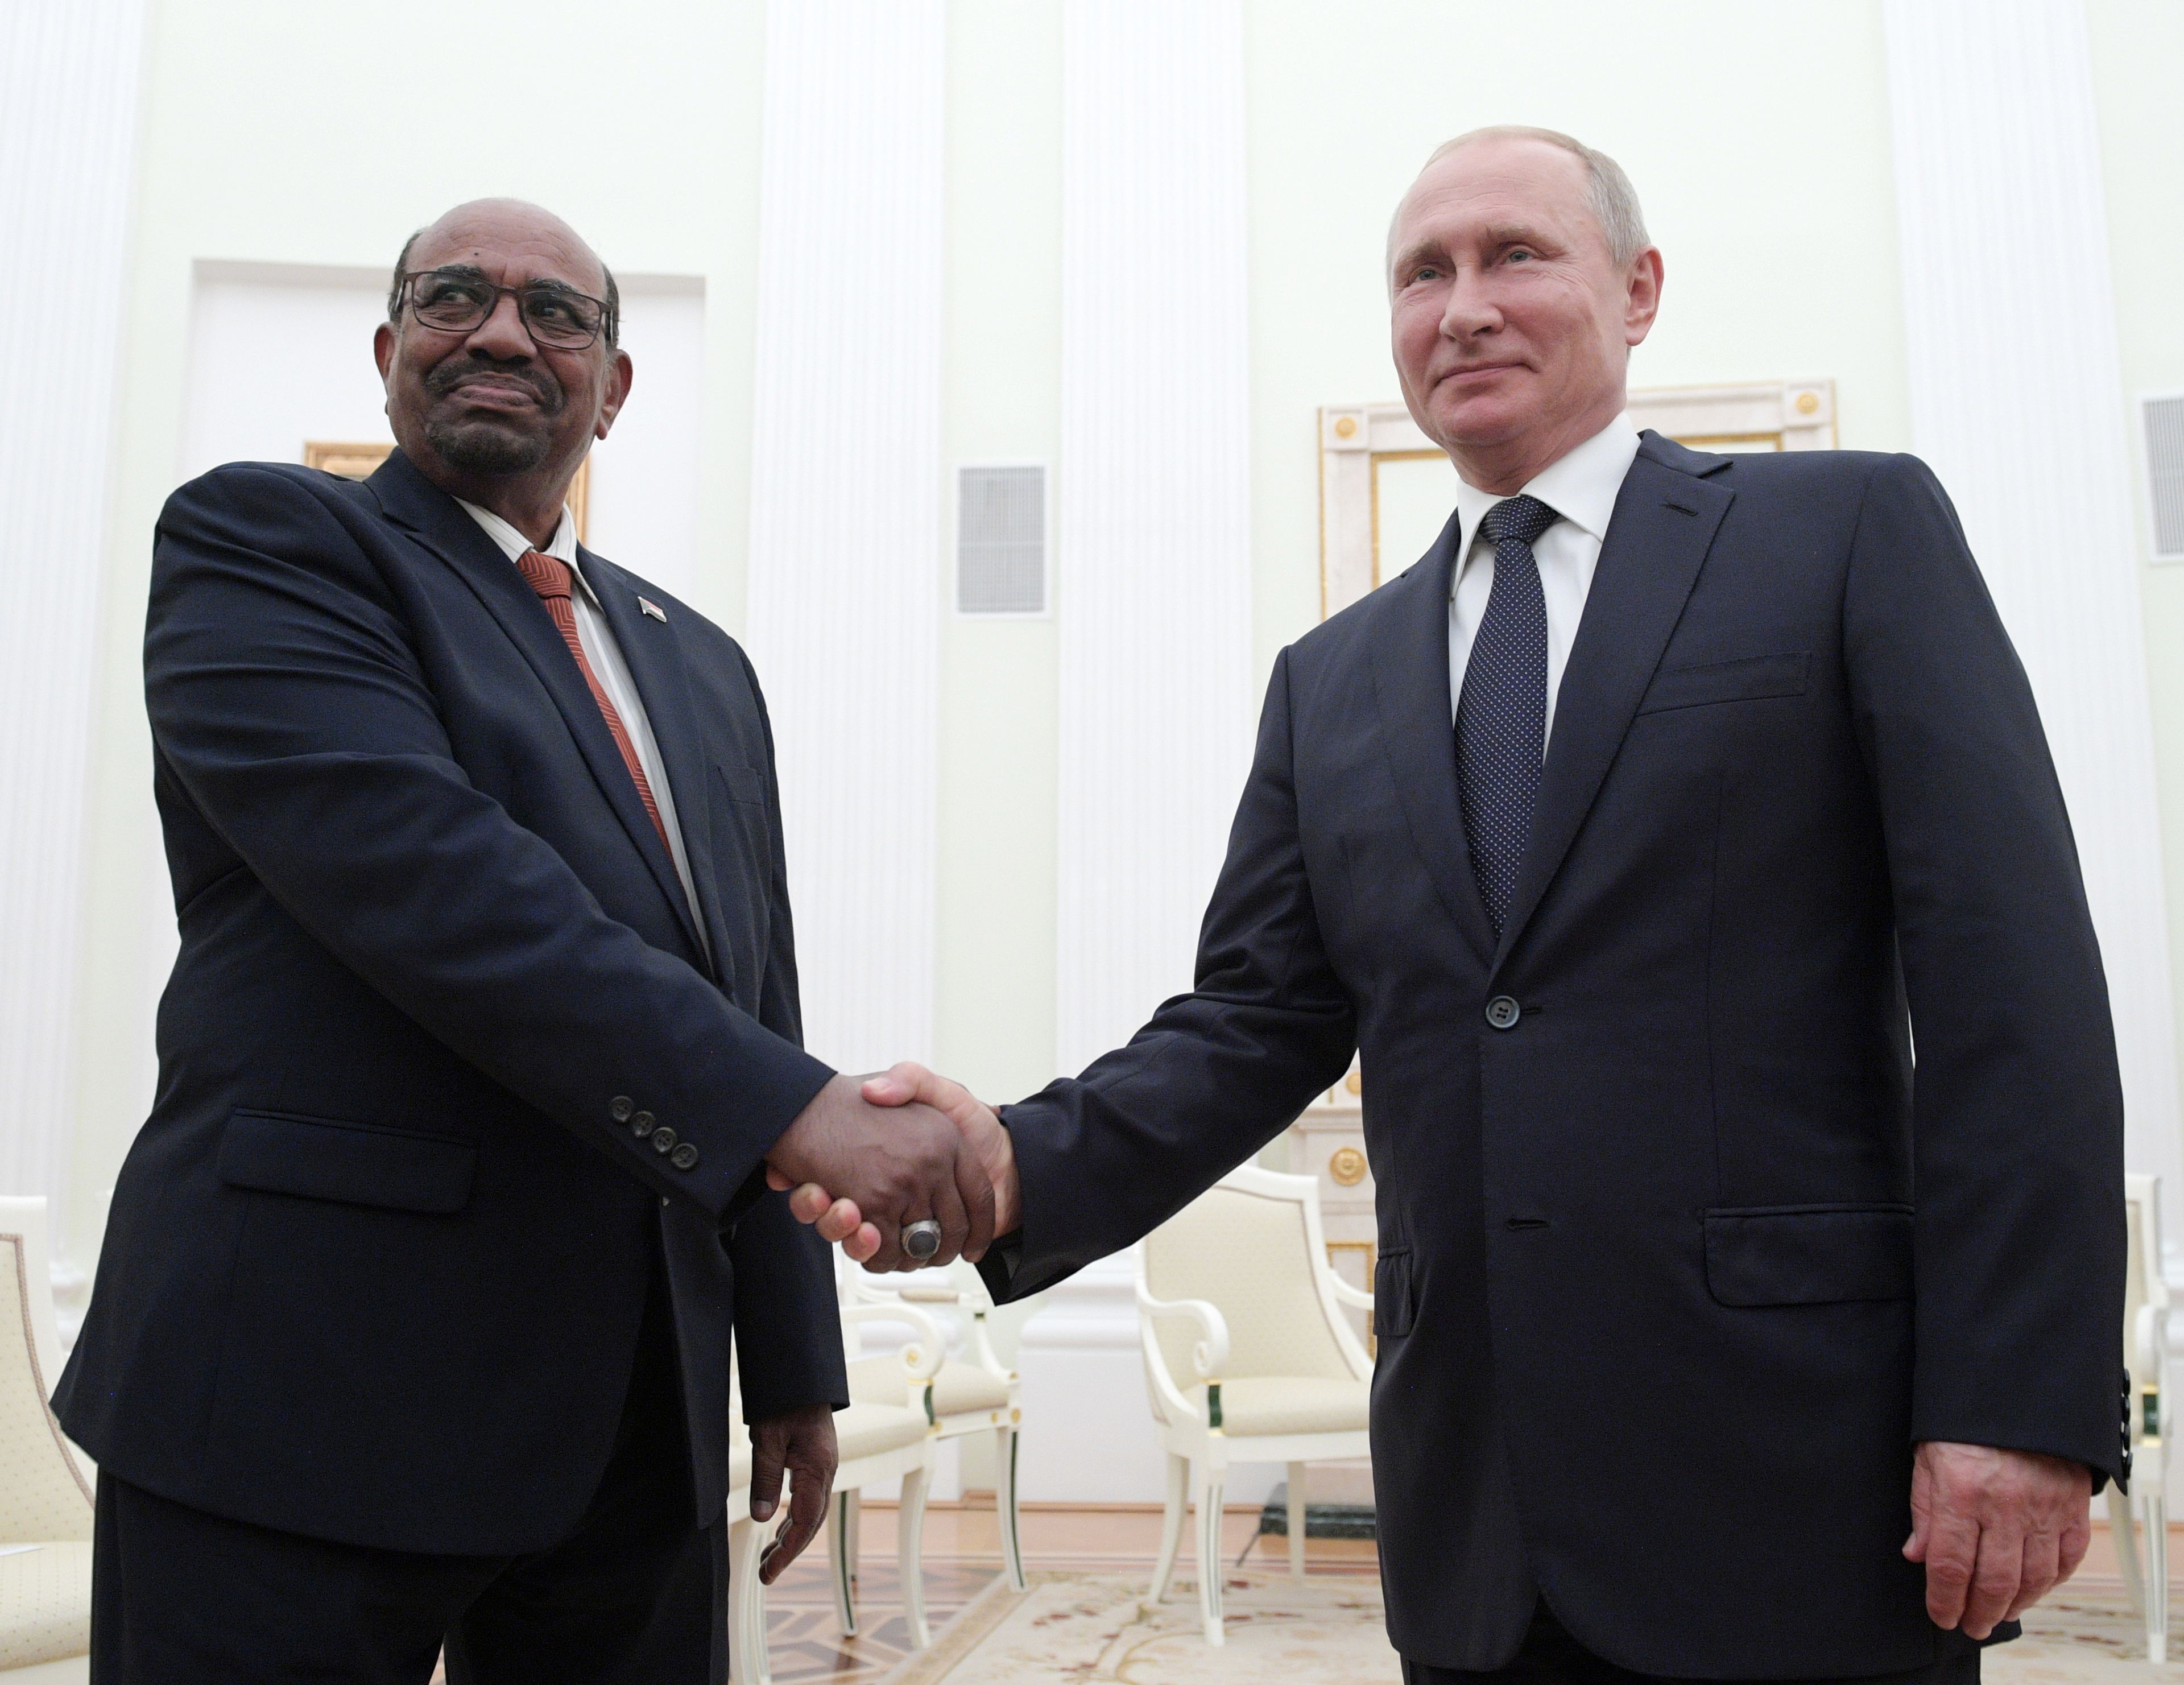 Russian President Vladimir Putin, right, shakes hands with Sudan's President Omar al-Bashir during their meeting in the Kremlin in Moscow, Russia, Saturday, July 14, 2018.